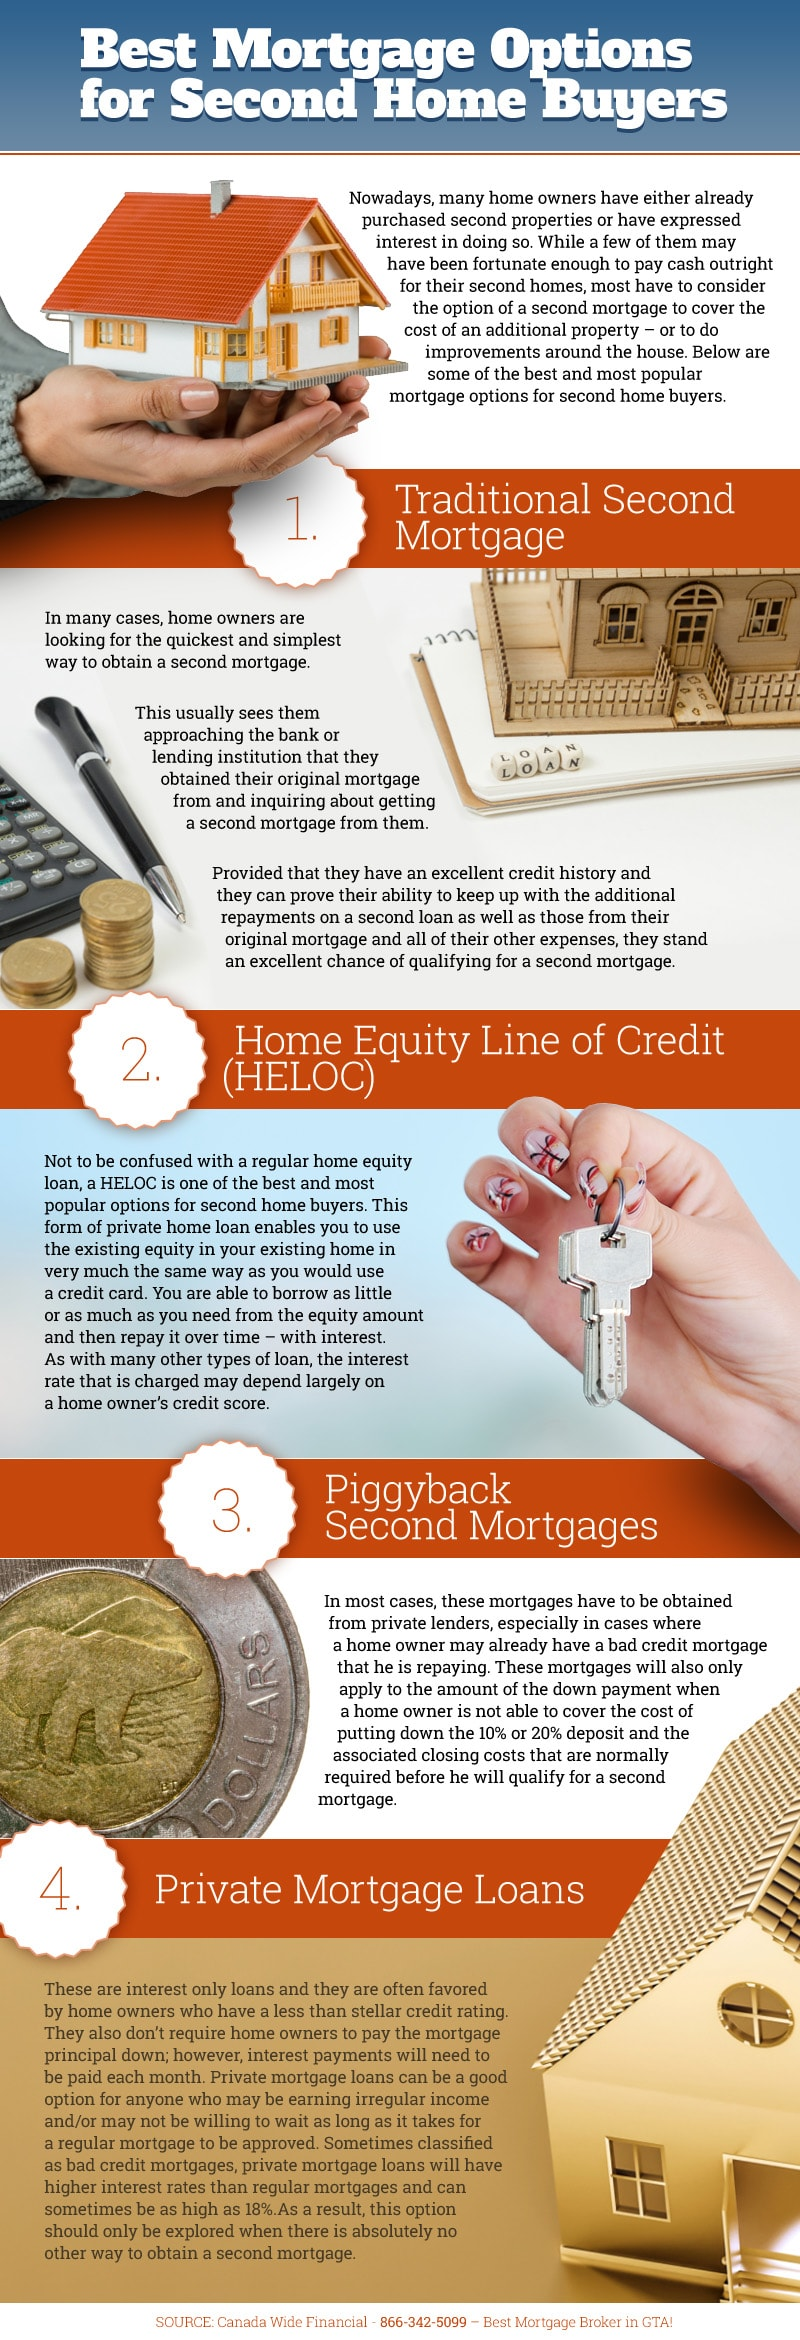 Best Mortgage Options for Second Home Buyers - Infographic